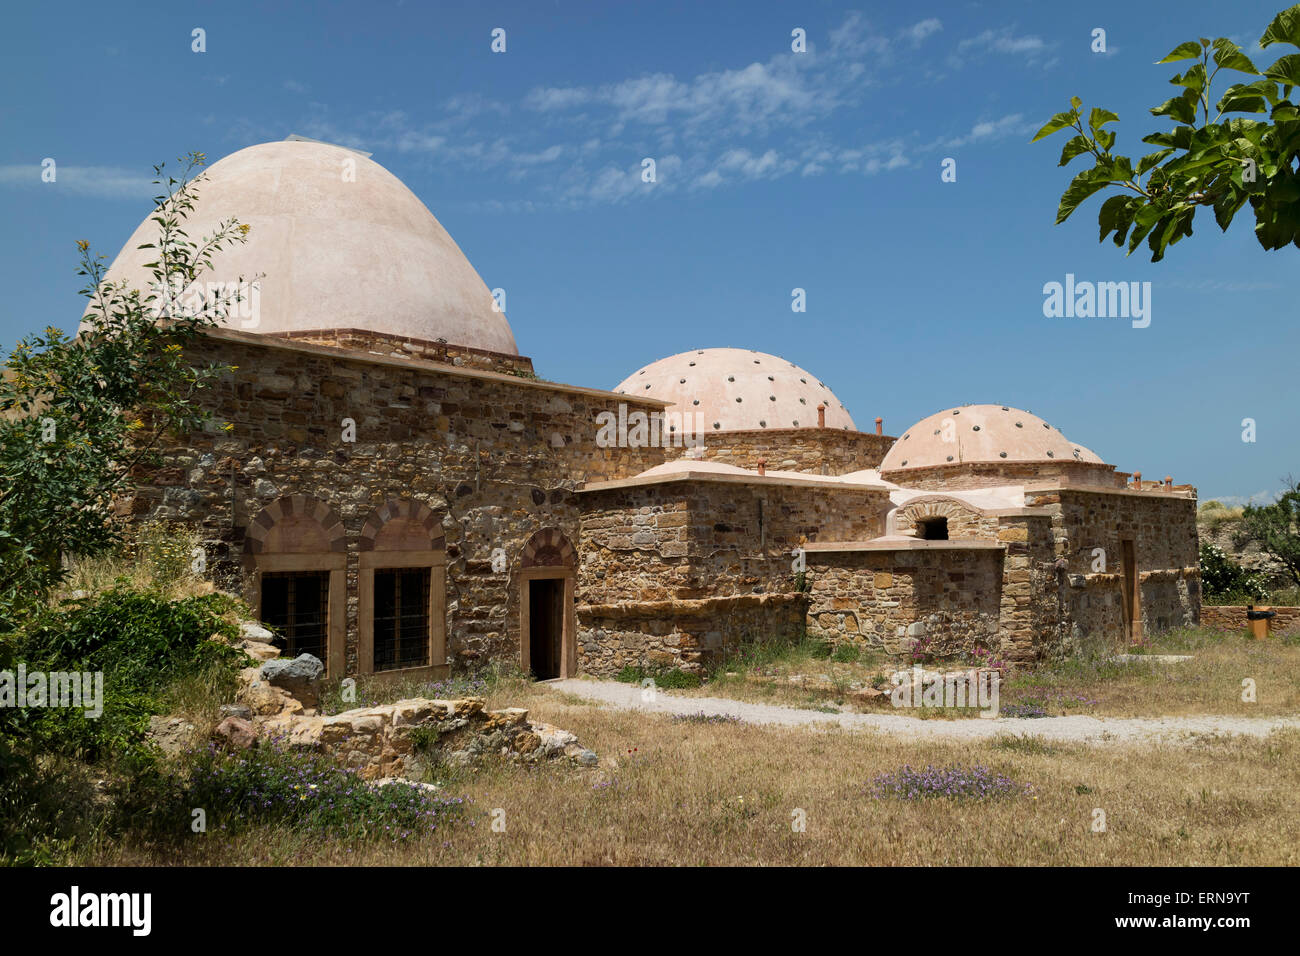 Restored Ottoman hammam in the city of Chios on the isle of Chios, Greece - Stock Image